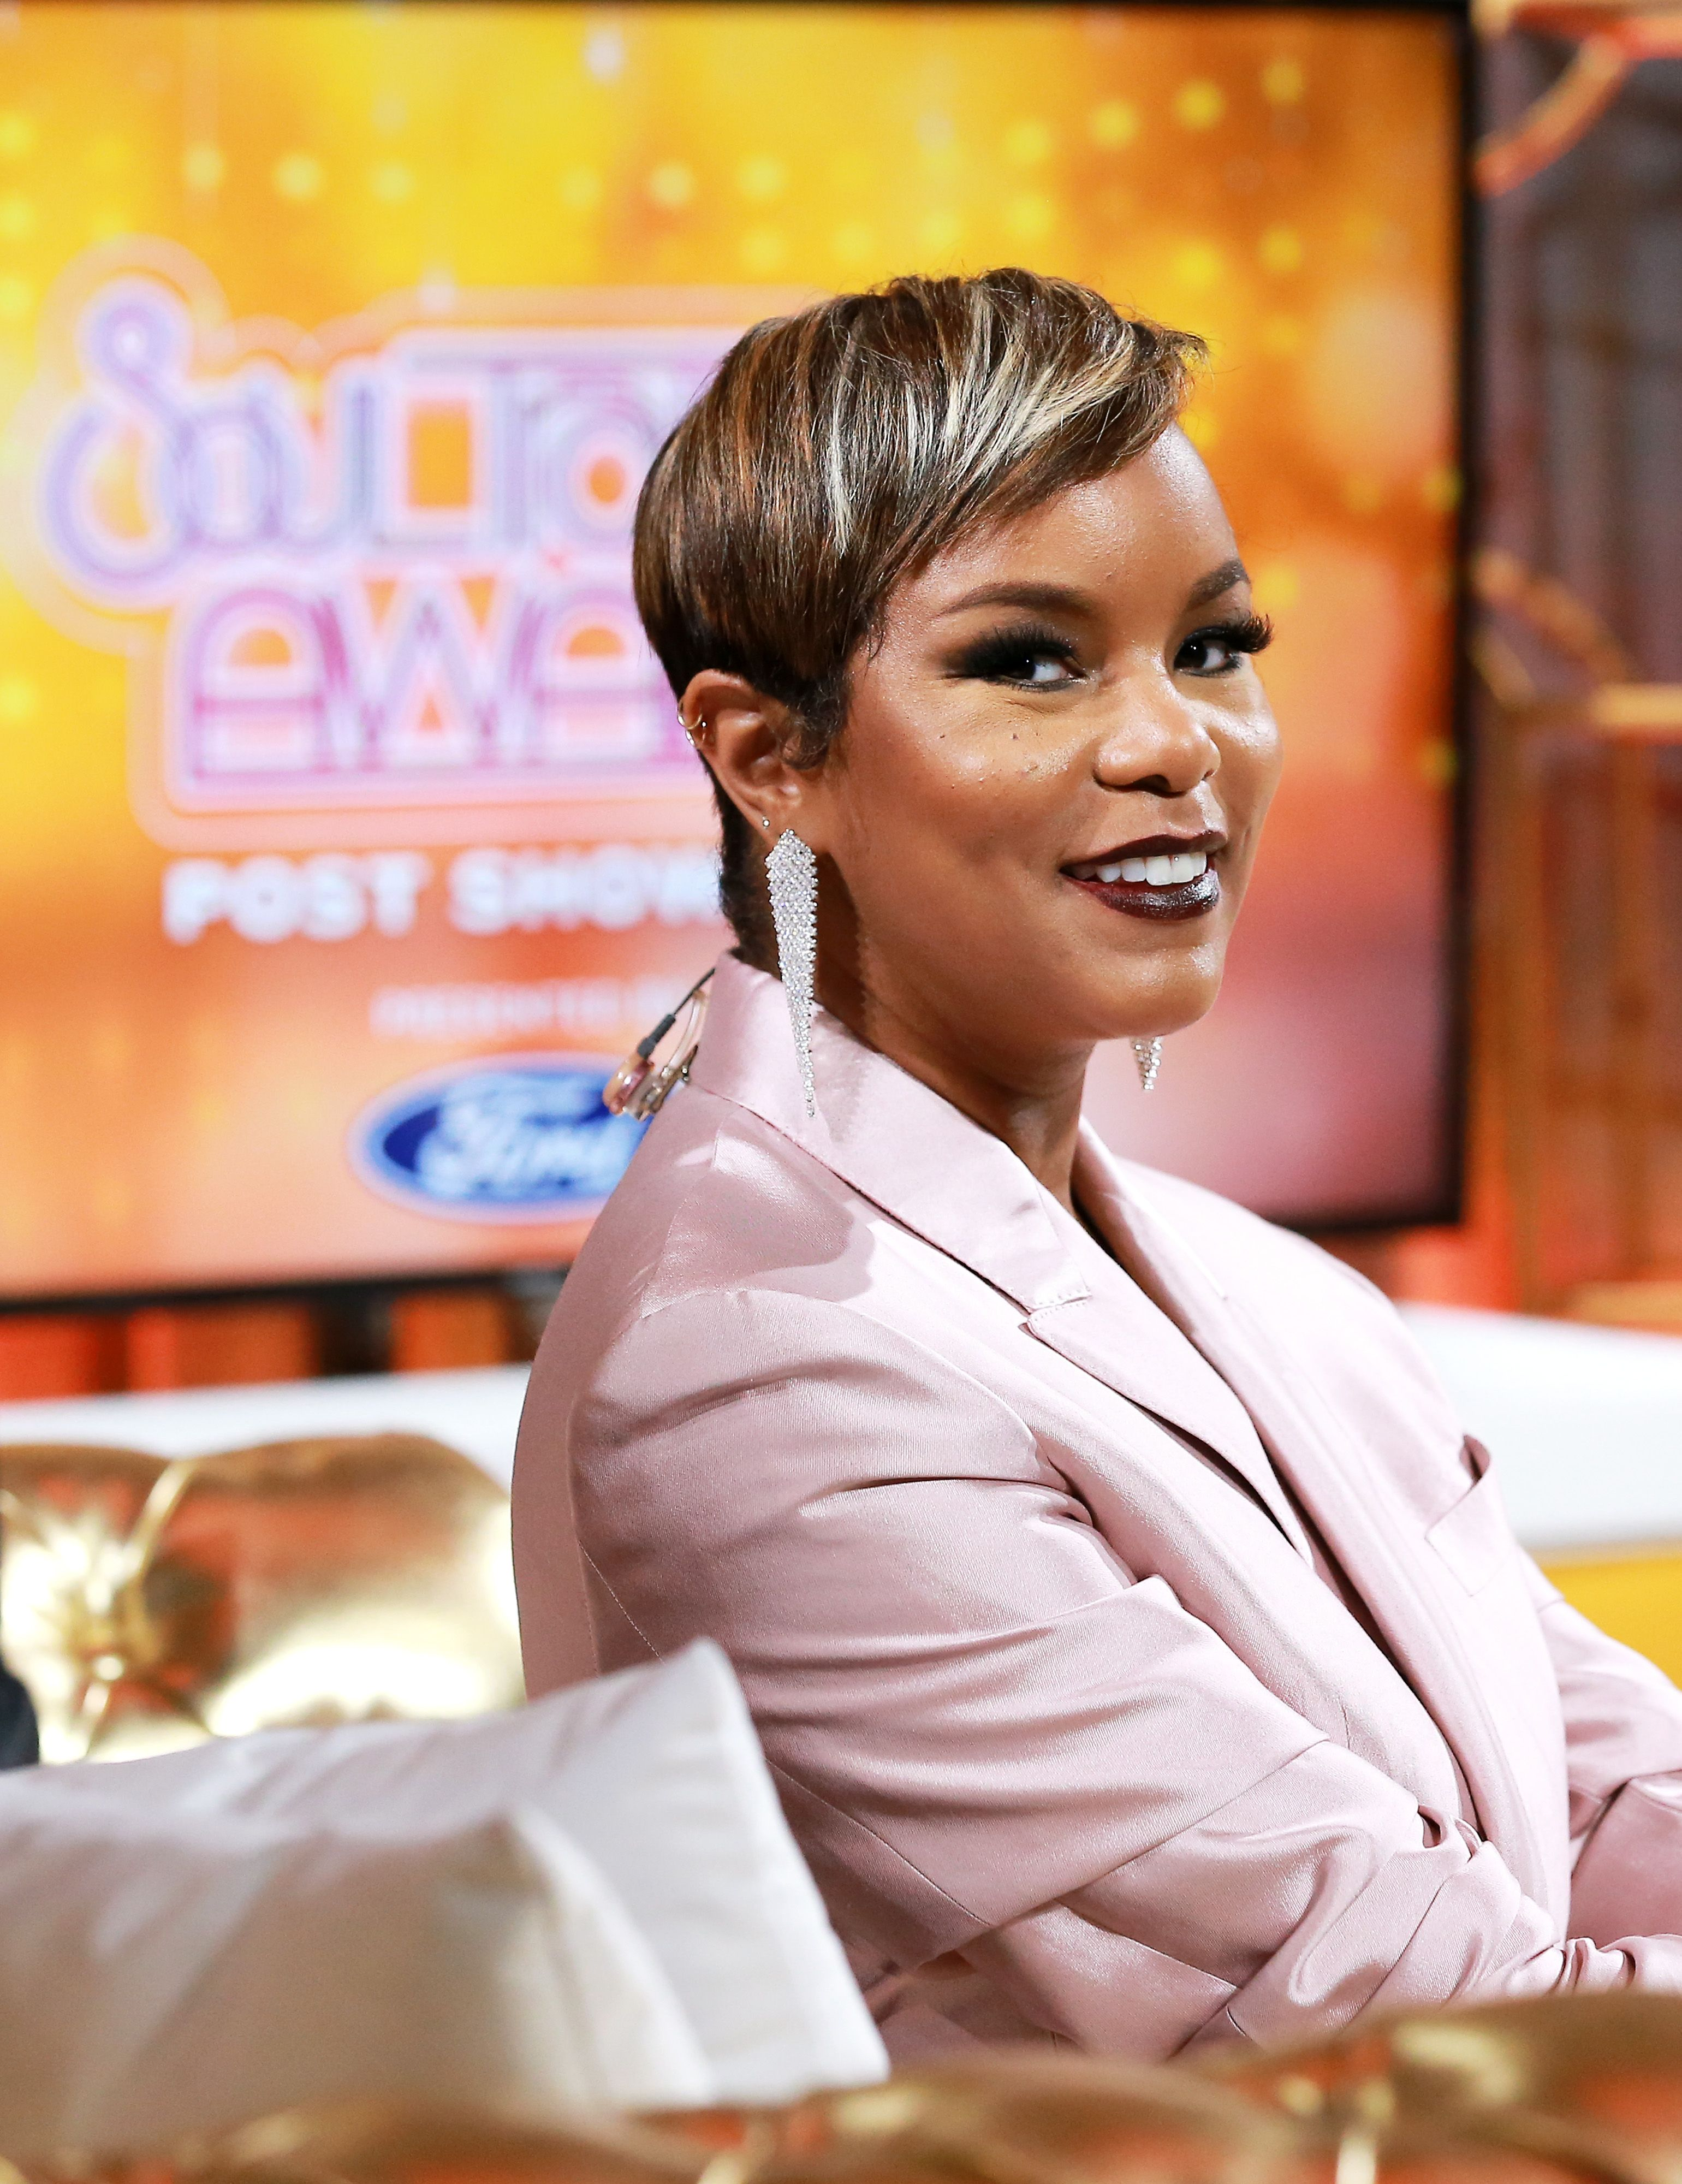 LeToya Luckett attends the 2019 Soul Train Awards presented by BET at the Orleans Arena on November 17, 2019 in Las Vegas, Nevada. | Source: Getty Images